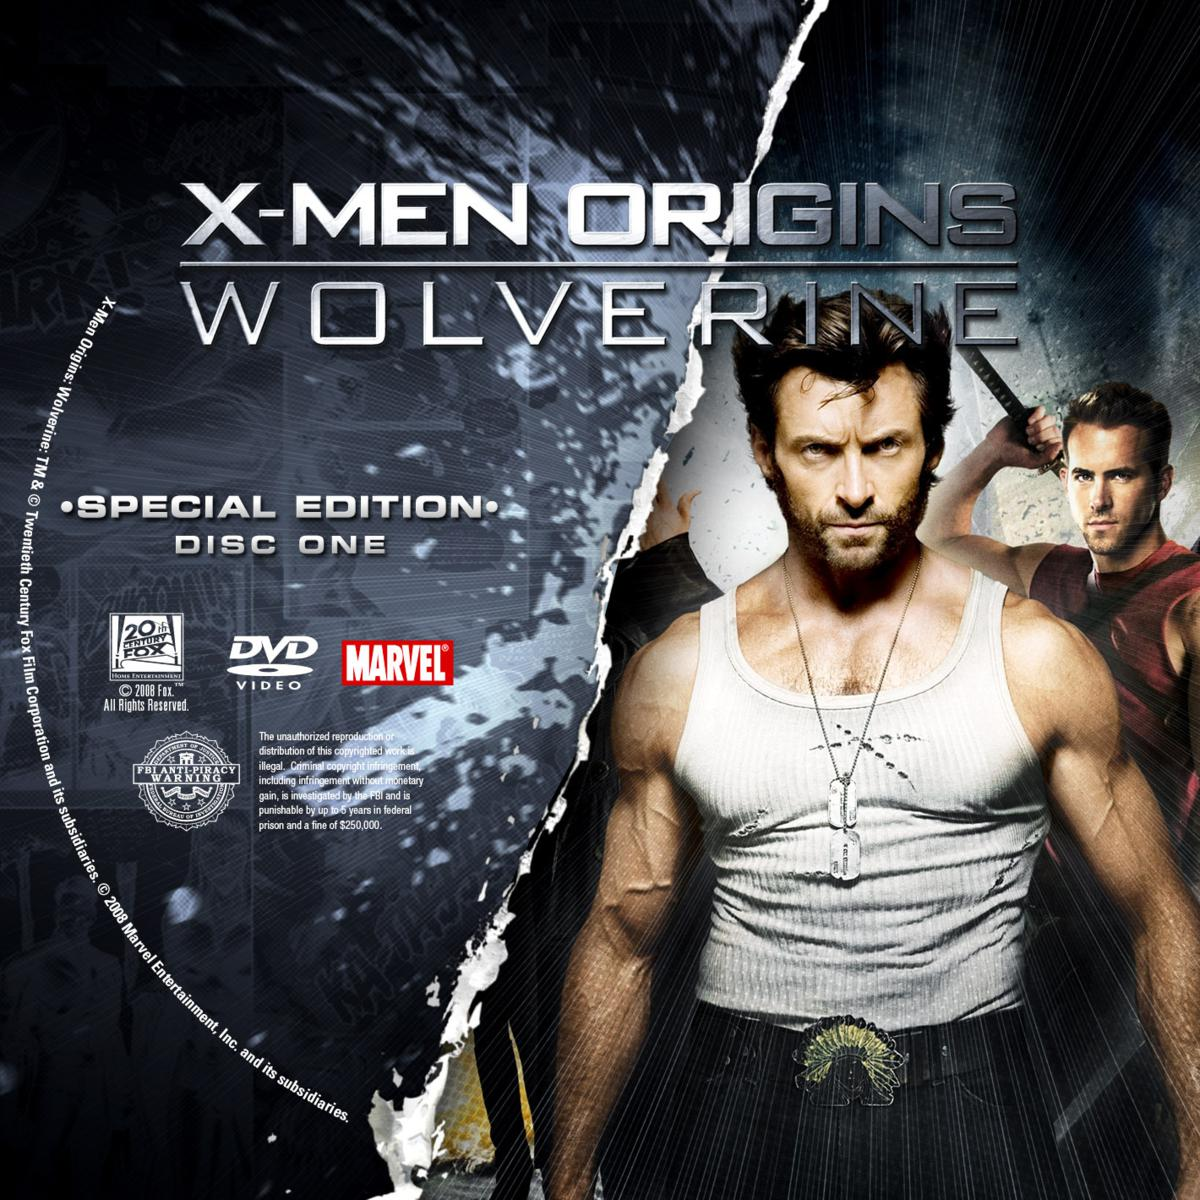 Label DVD X-Men Origins Wolverine Special Edition Disc One